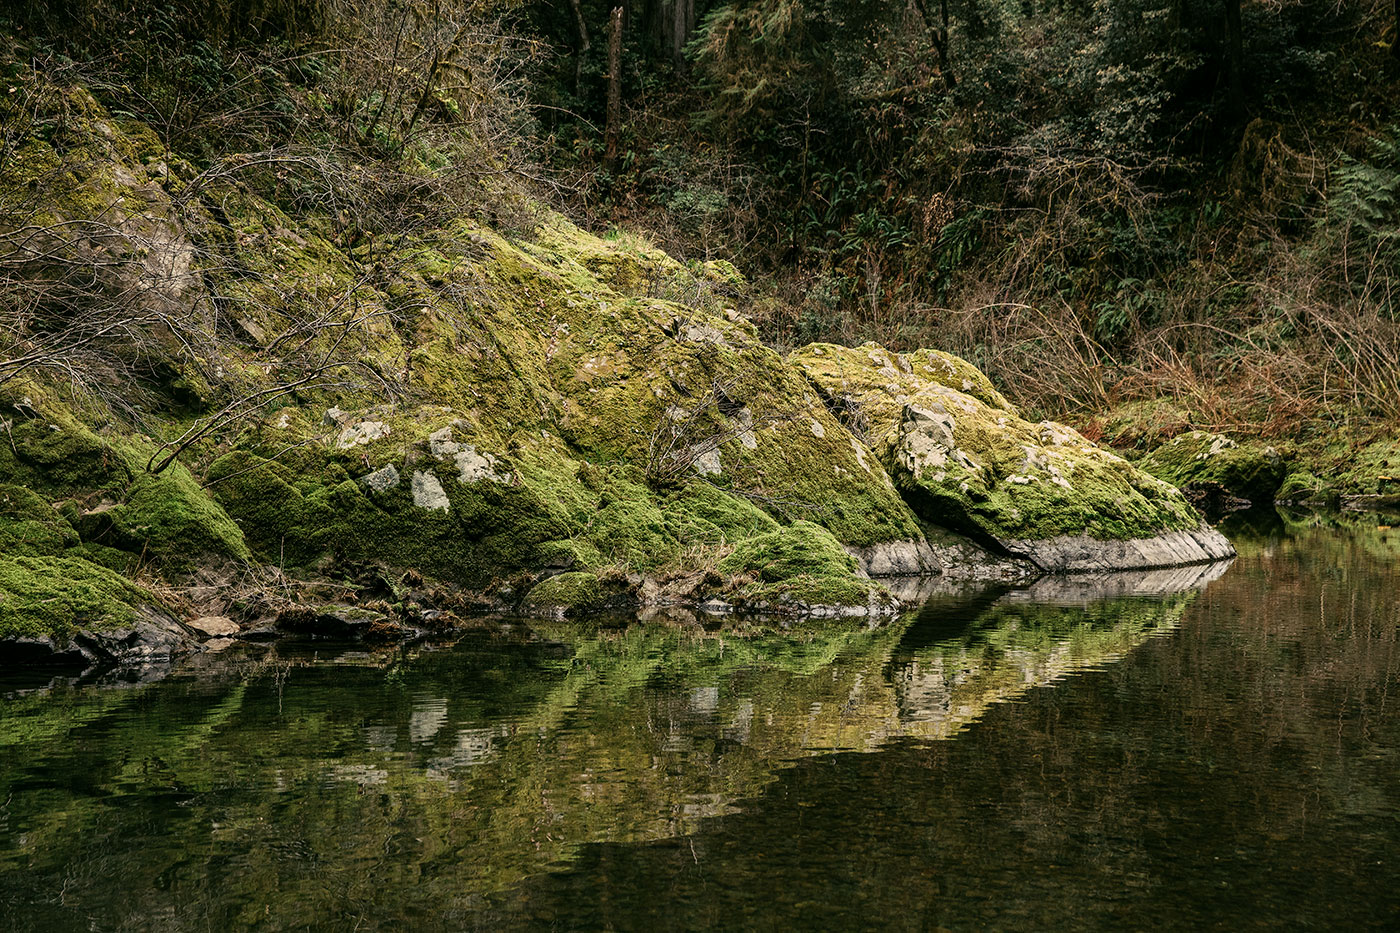 A moss-covered rock along the Smith River in Jedediah Smith Redwoods State Park in Northern California